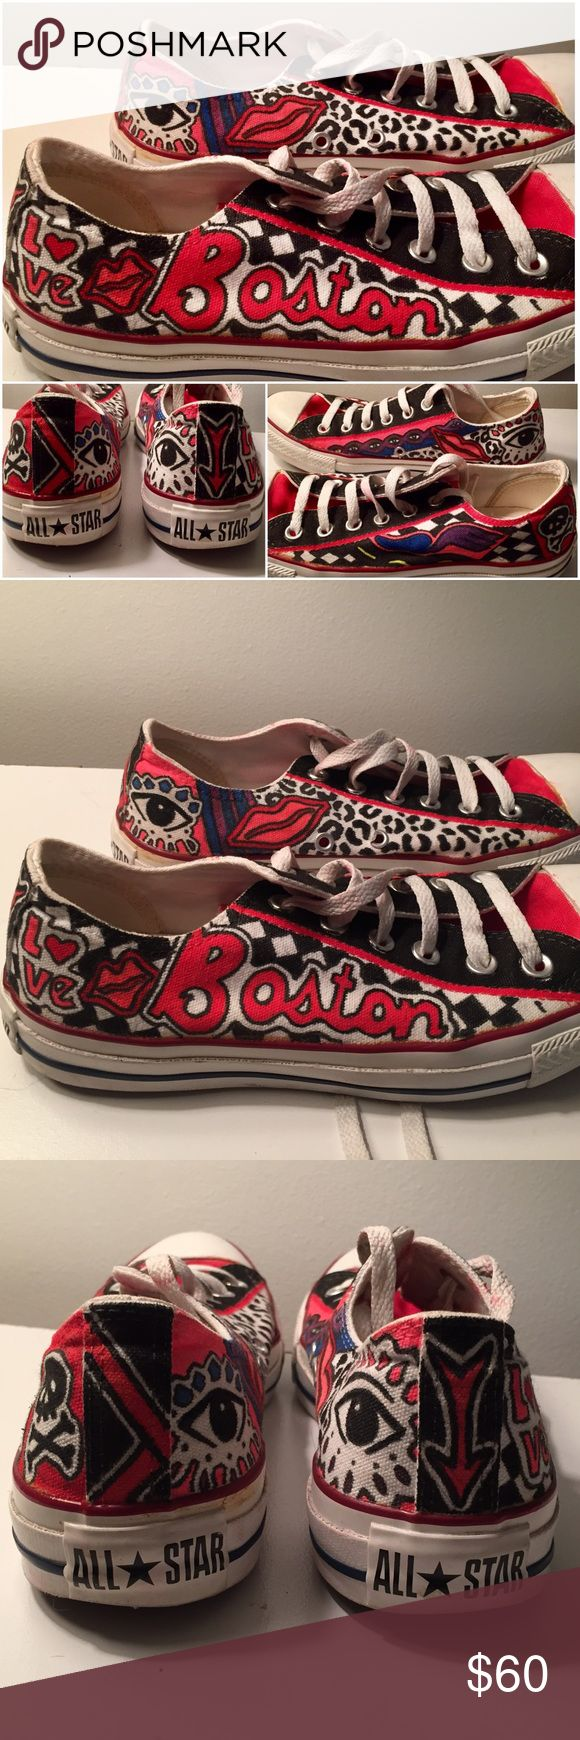 Converse. Size 7 women's. Design made with fabric markers. Worn only twice. Converse Shoes Sneakers